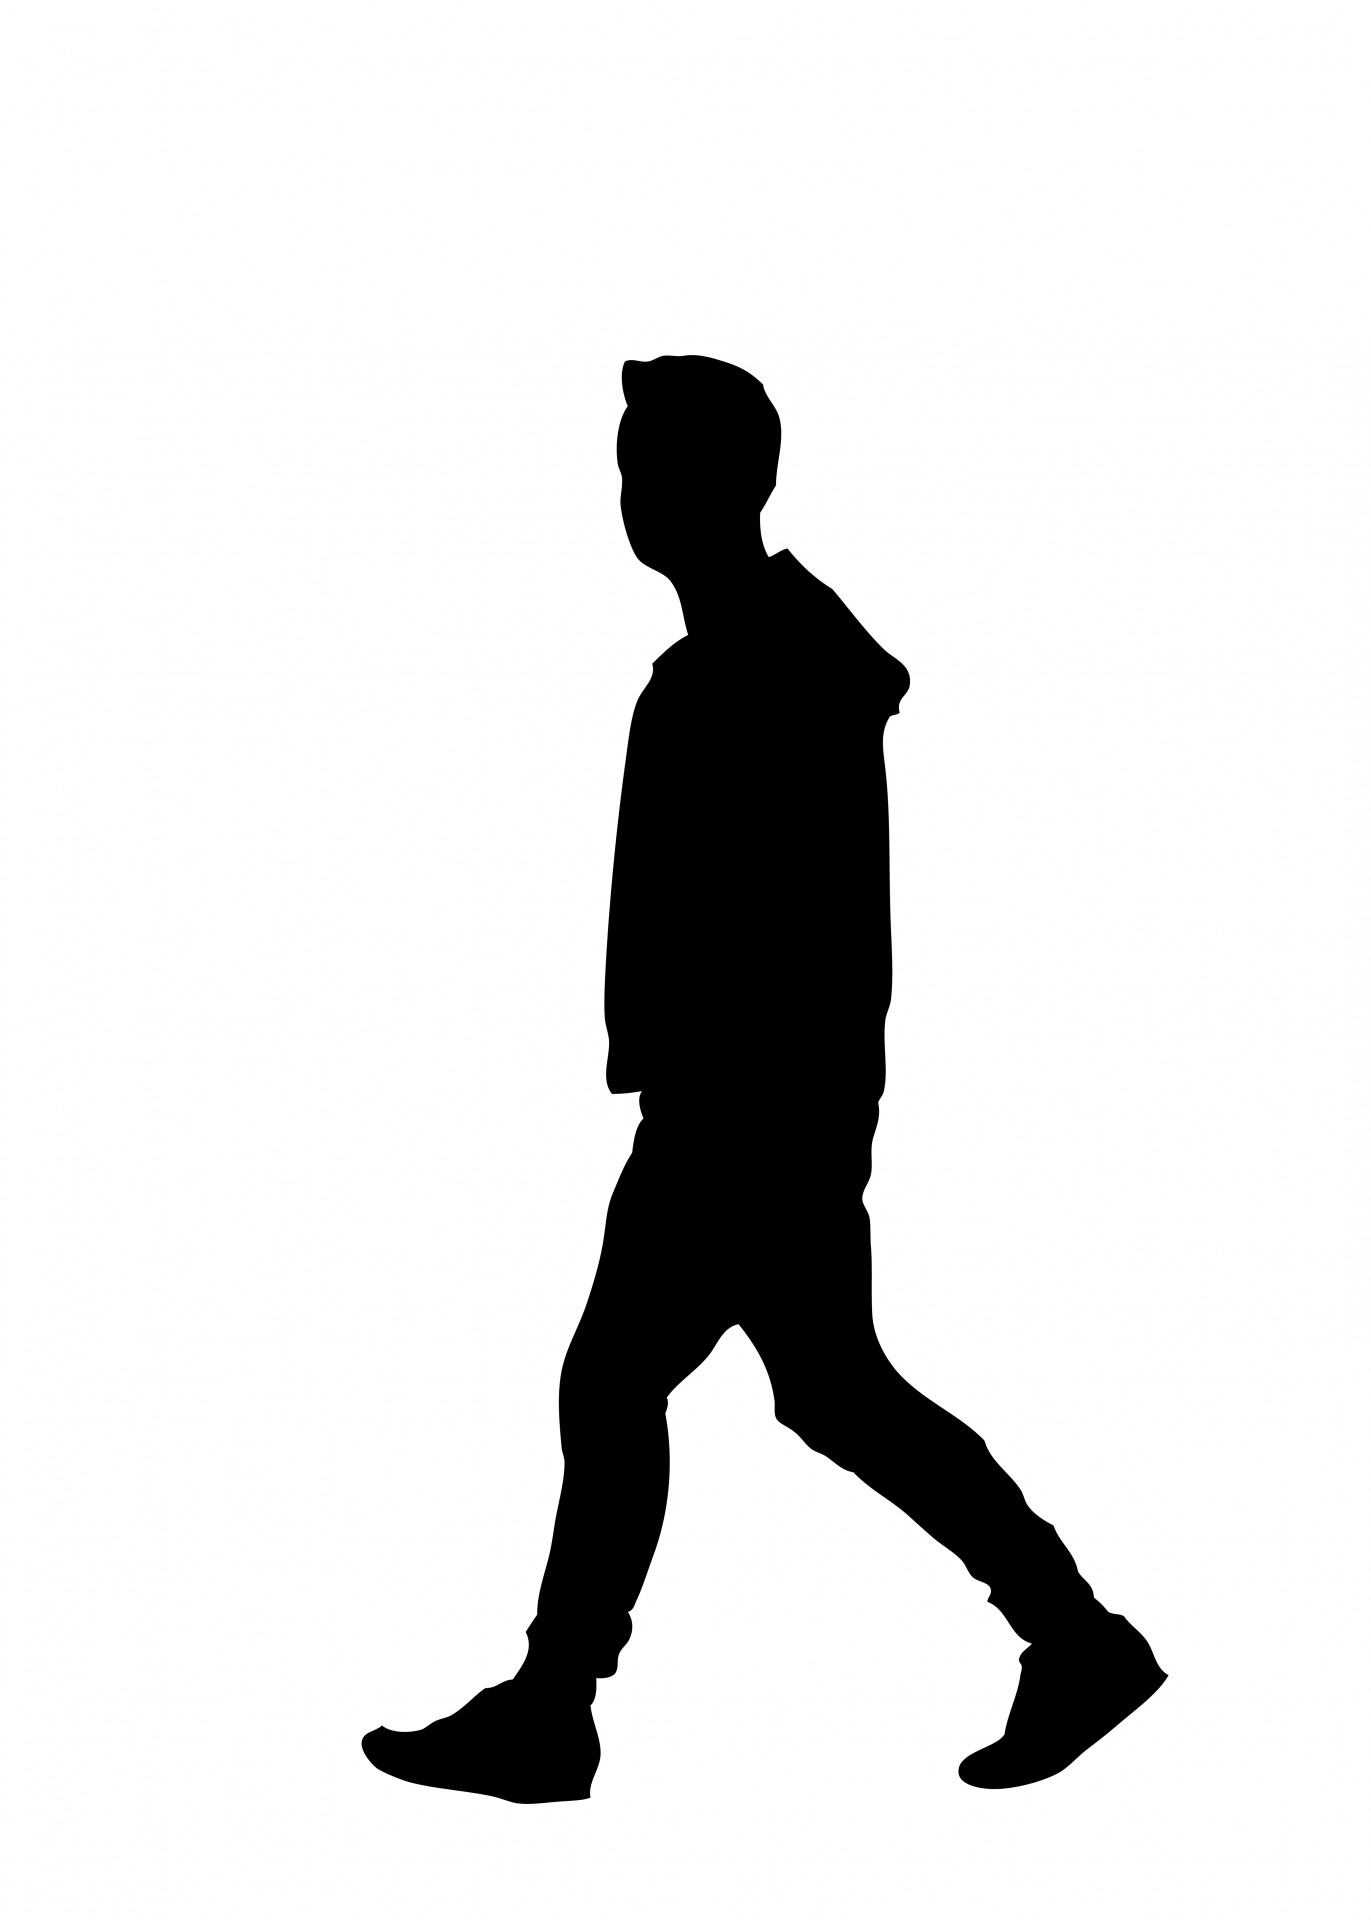 Man Walking Silhouette Clipart Free Stock Photo Hd   Public Domain